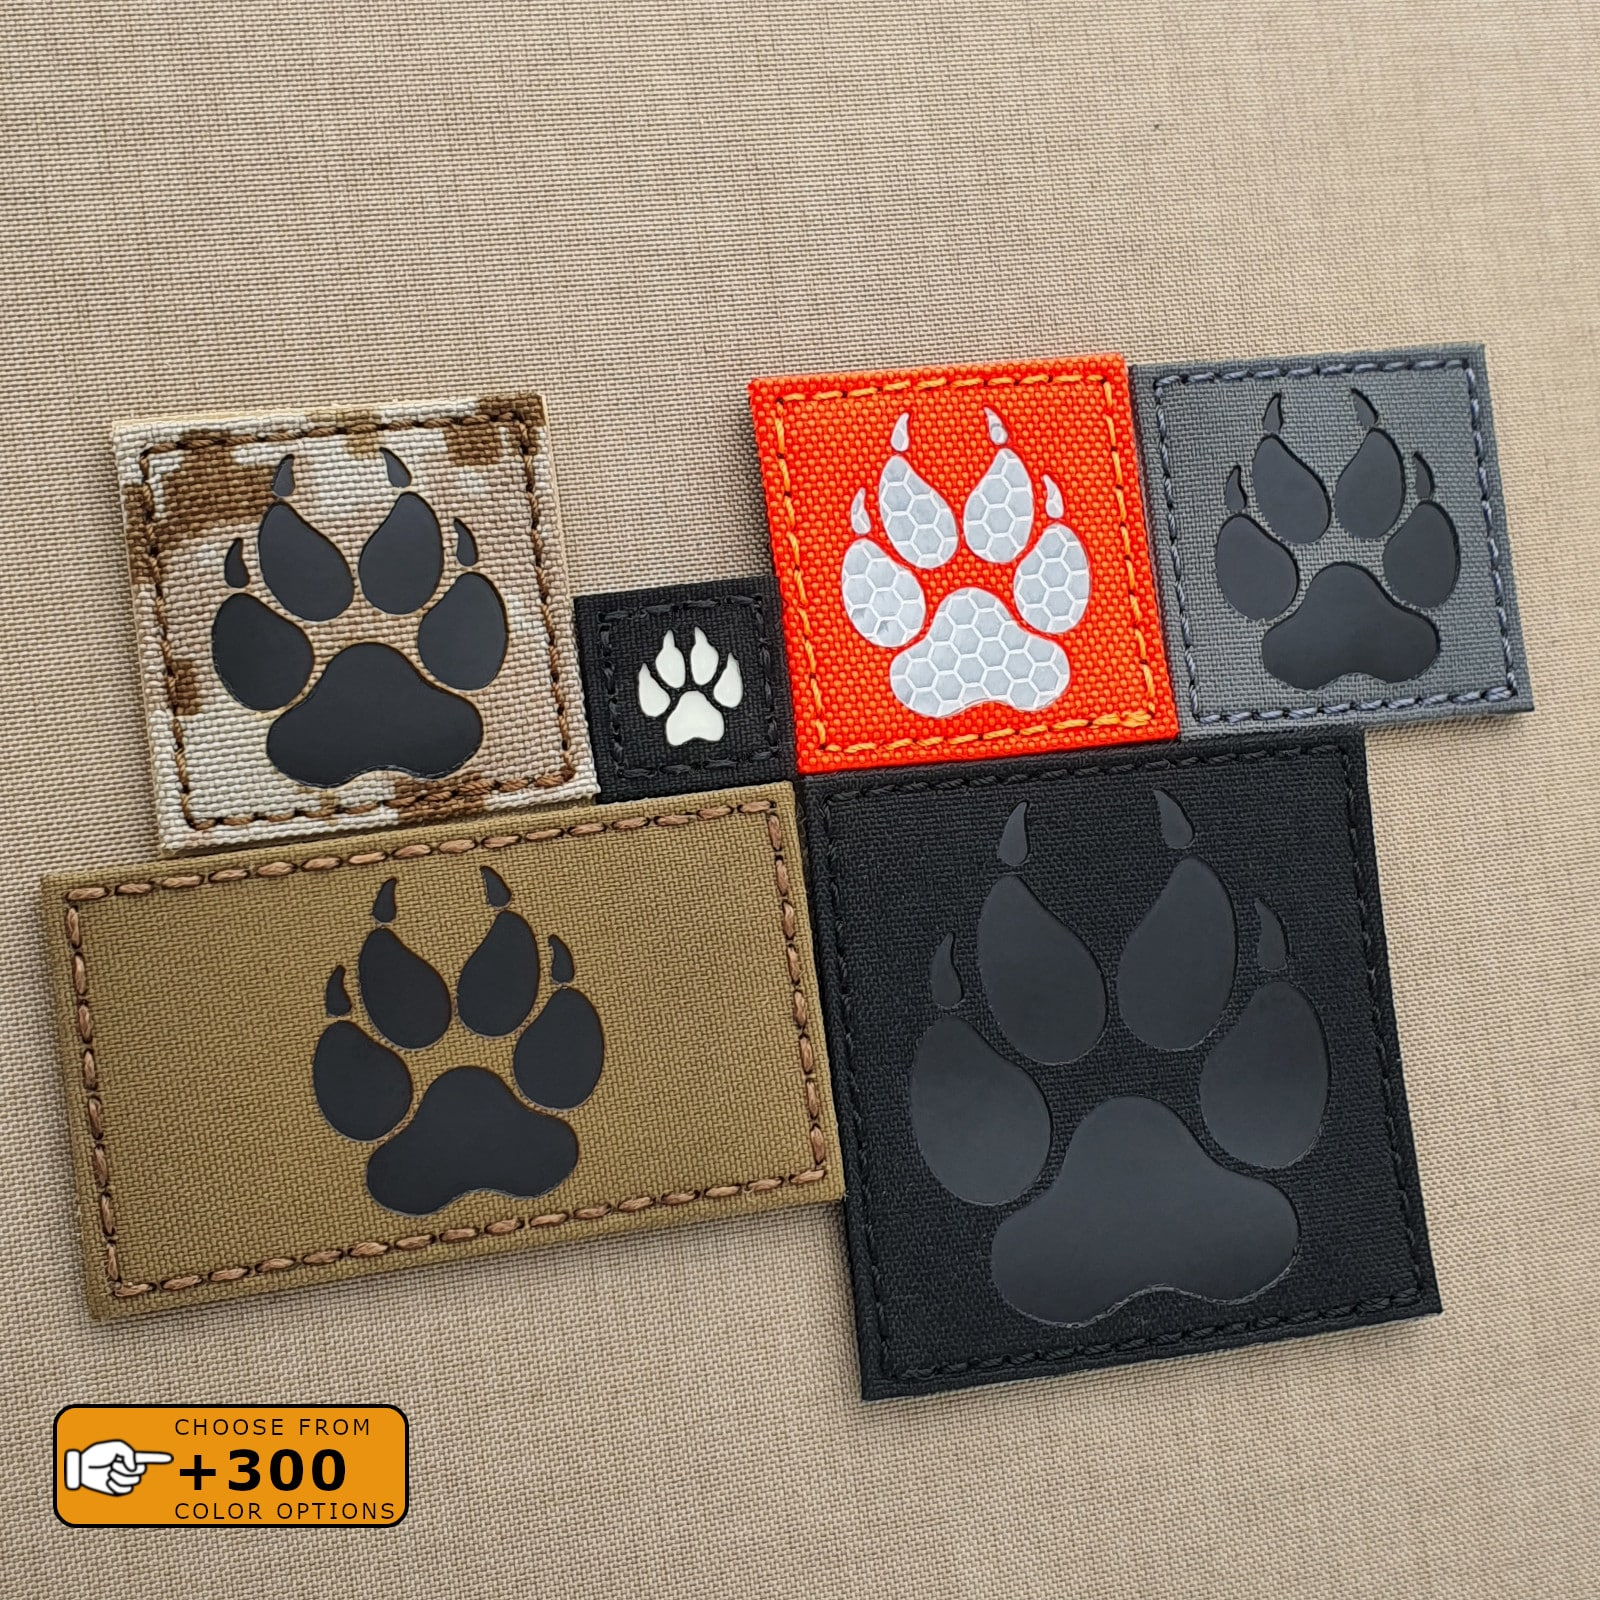 Micro IR Patch 1x1 Multciam OCP k9 Dog Paw Handler Infared Cat Eyes Morale Army Tactical Morale